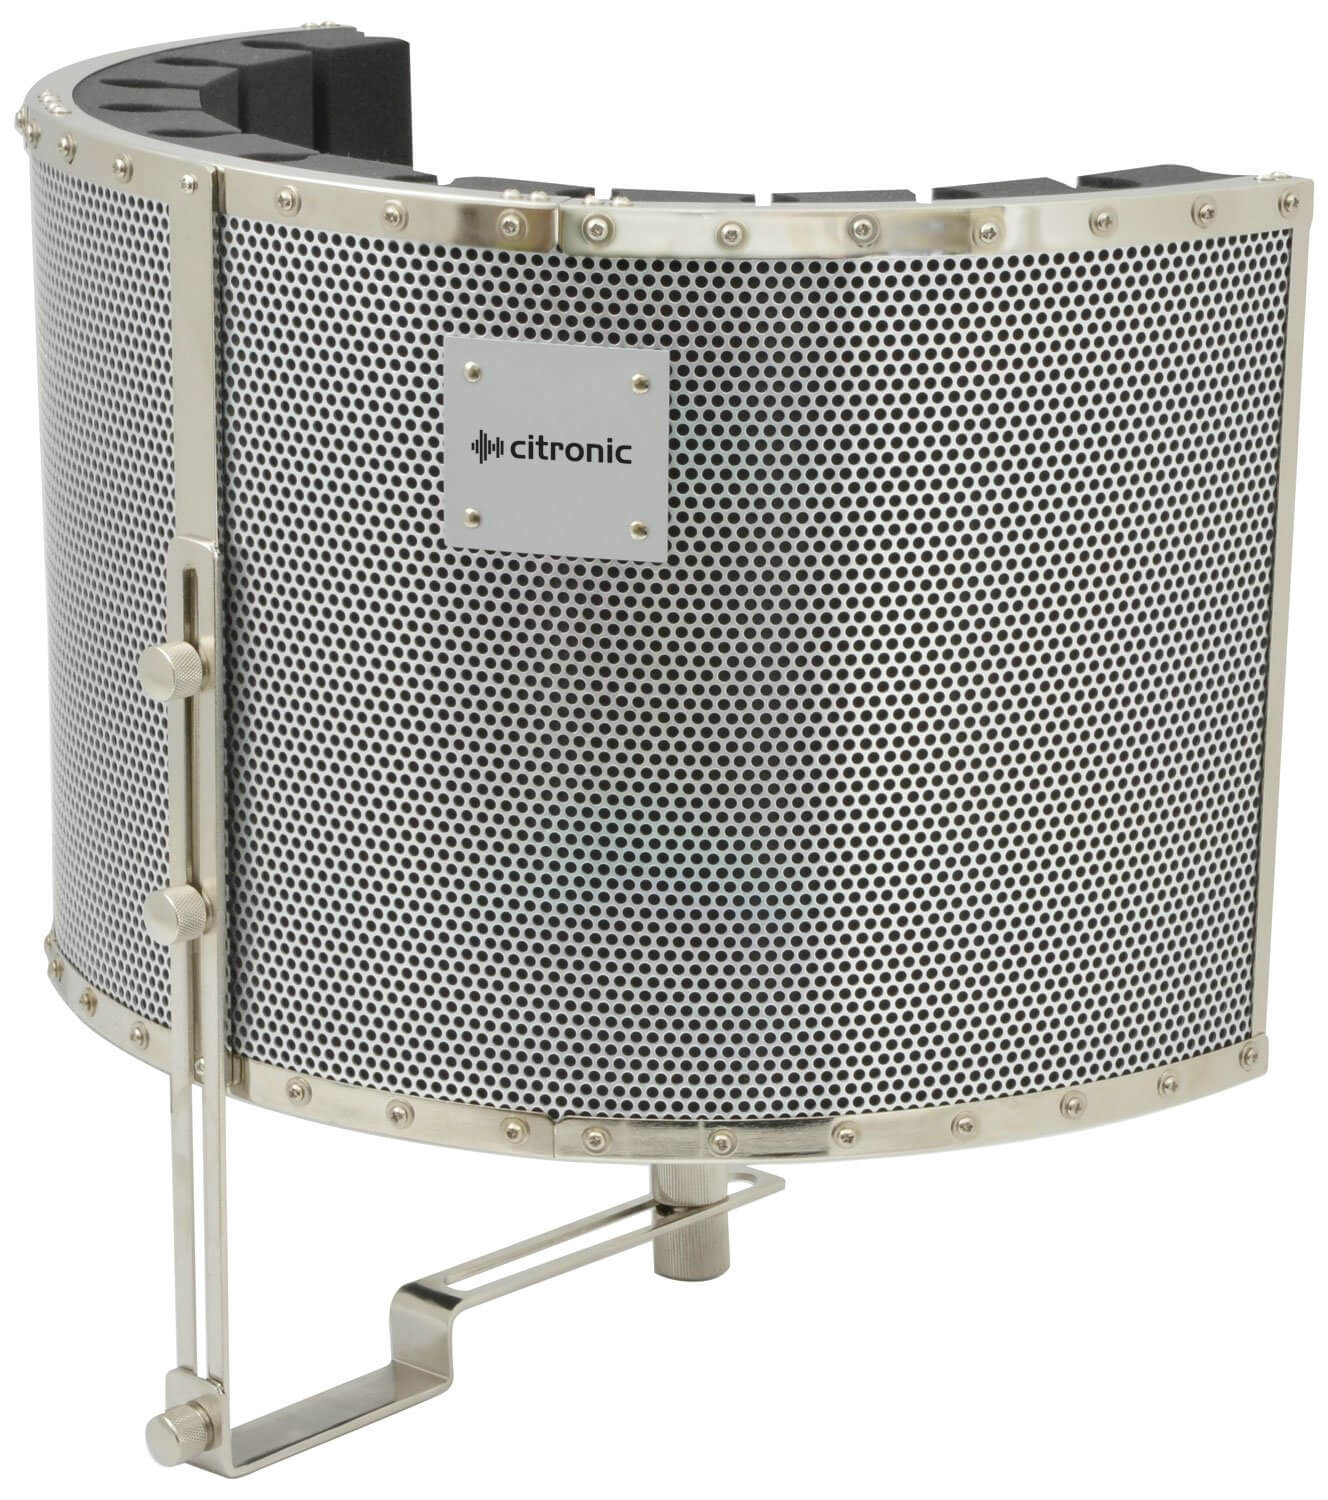 Citronic Studio Microphone Arc Screen Reflection Isolation Filter